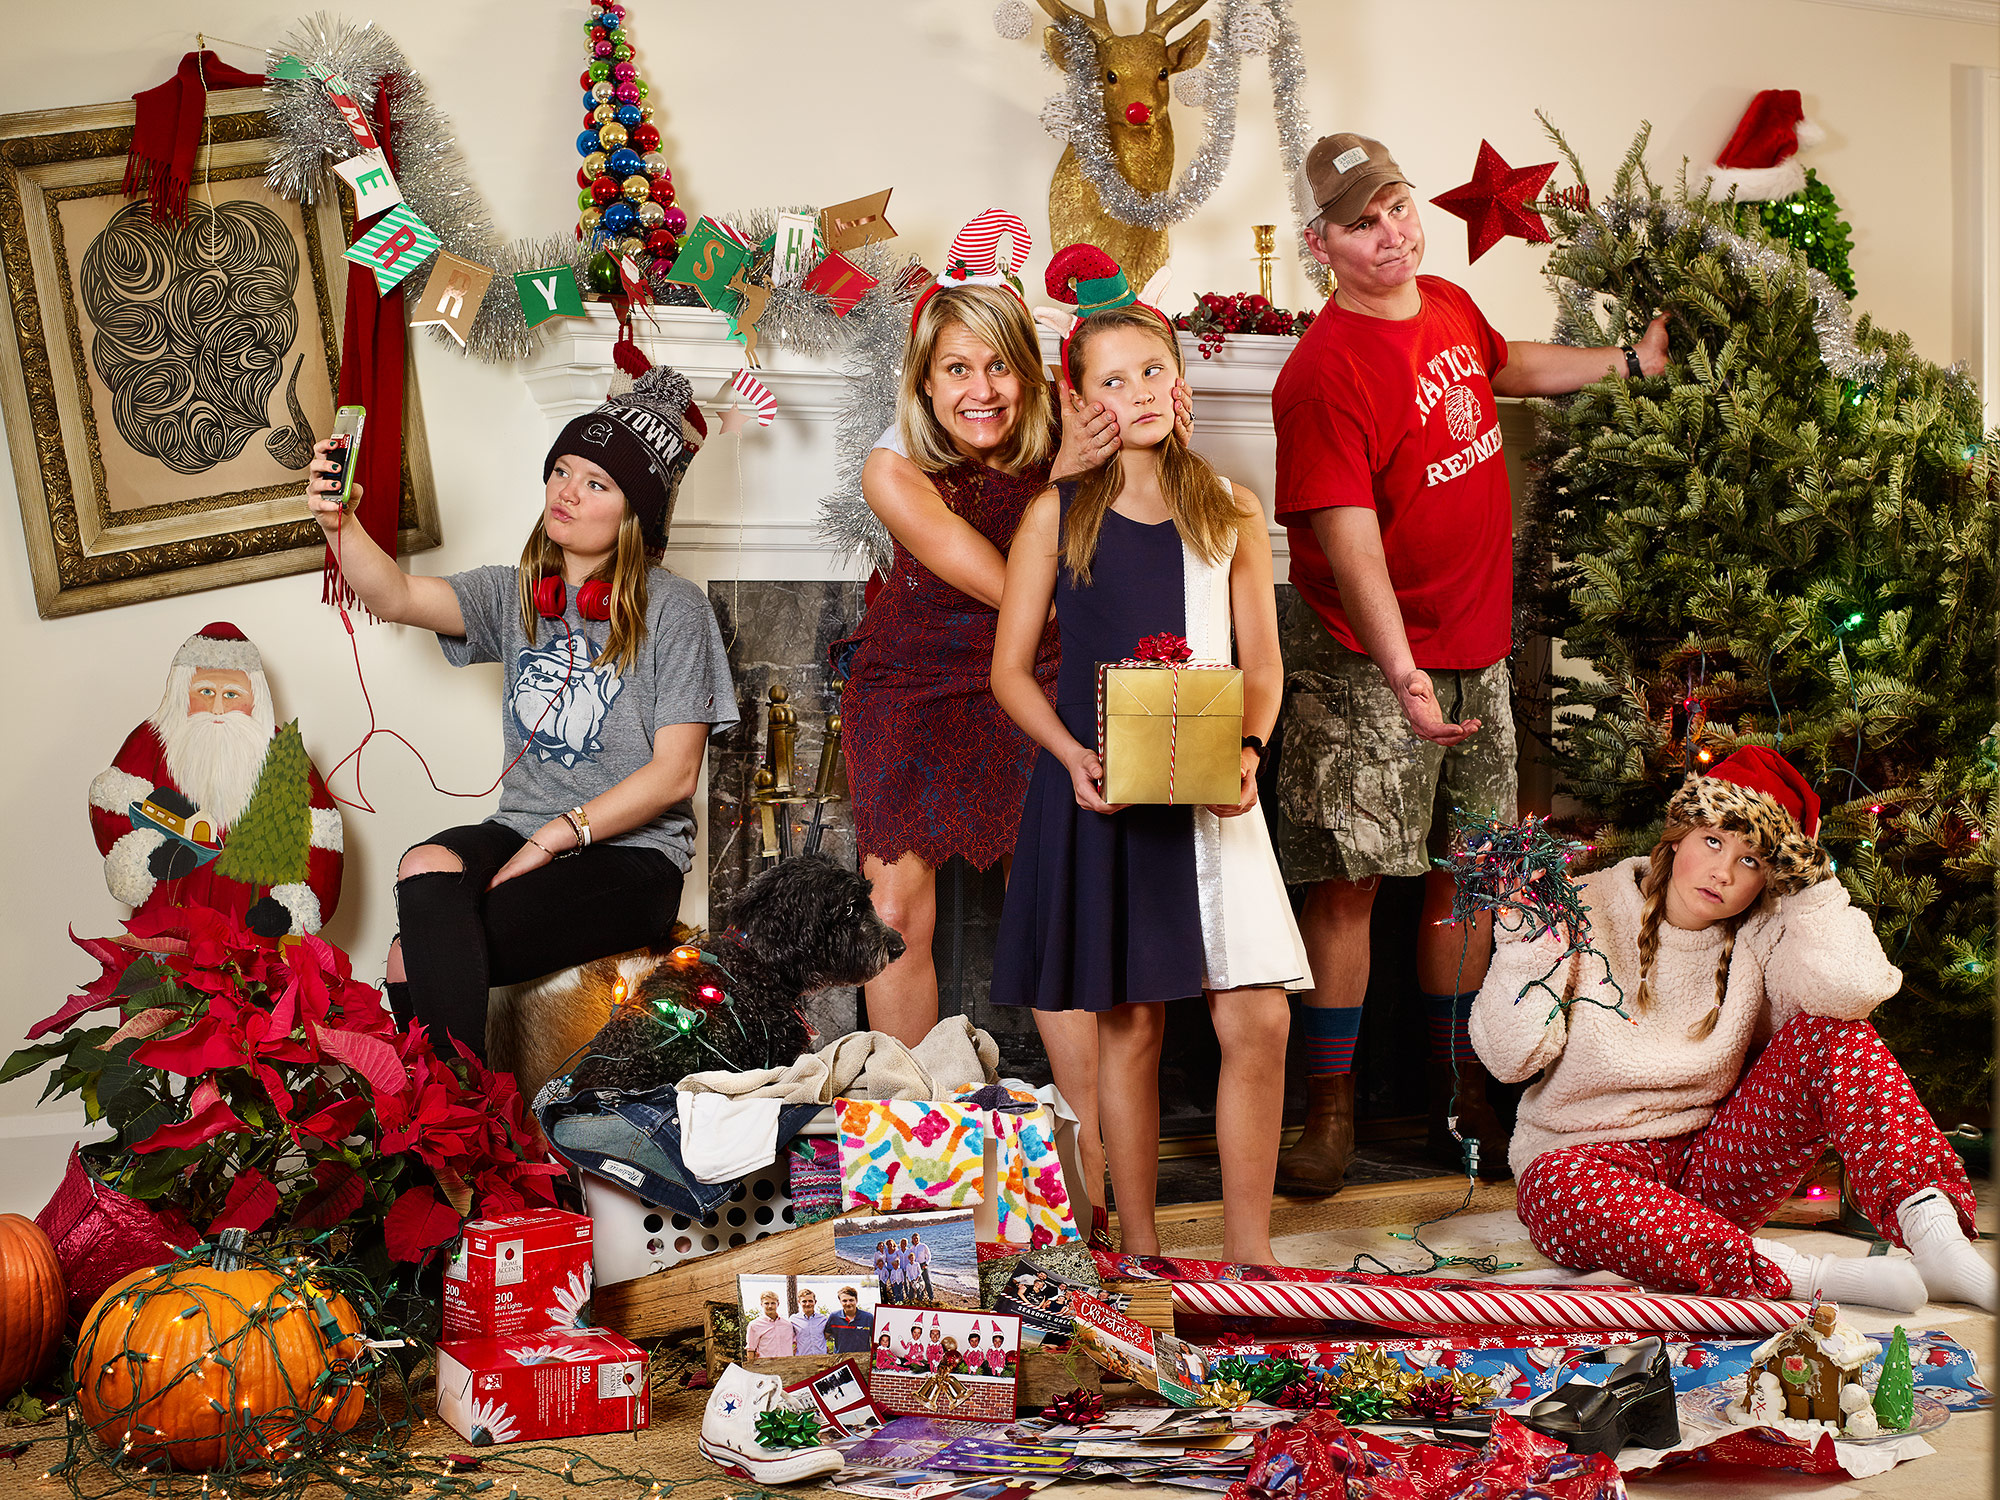 Hauck_2016-12-19_Christmas_Card_Selects_001_Left_Side_r02.jpg